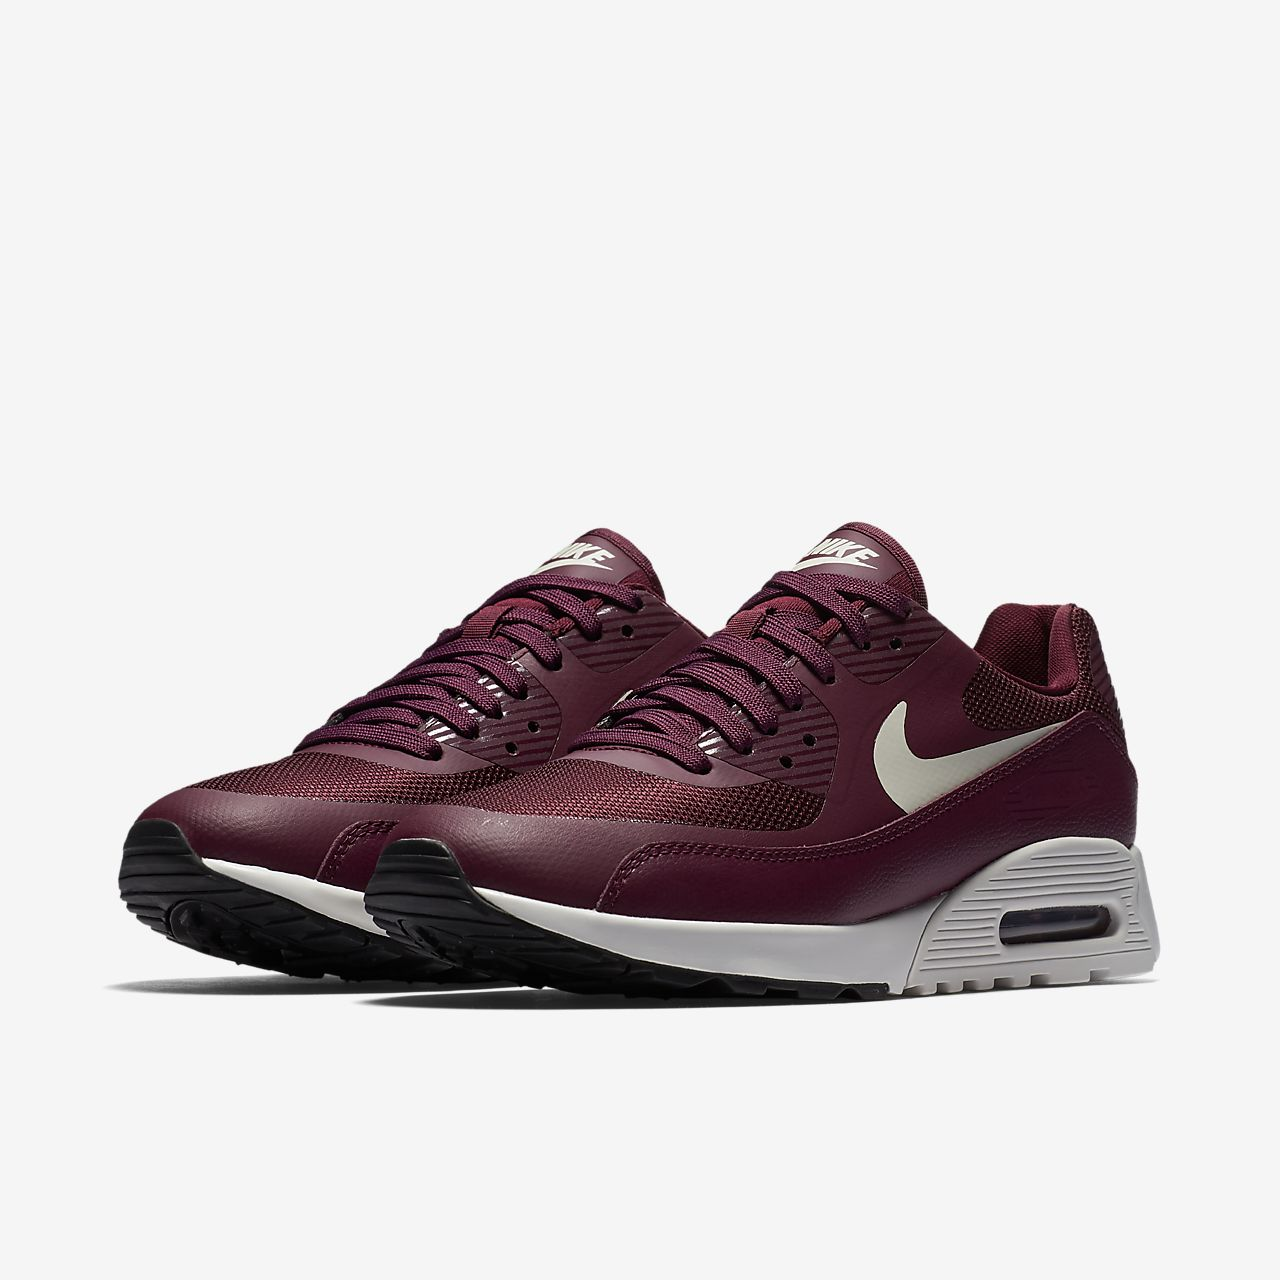 Wonderful Cheap Nike Air Max 2015 Womens Shoes Online | Nike Air Max 2015 Womens On Sale | Www ...